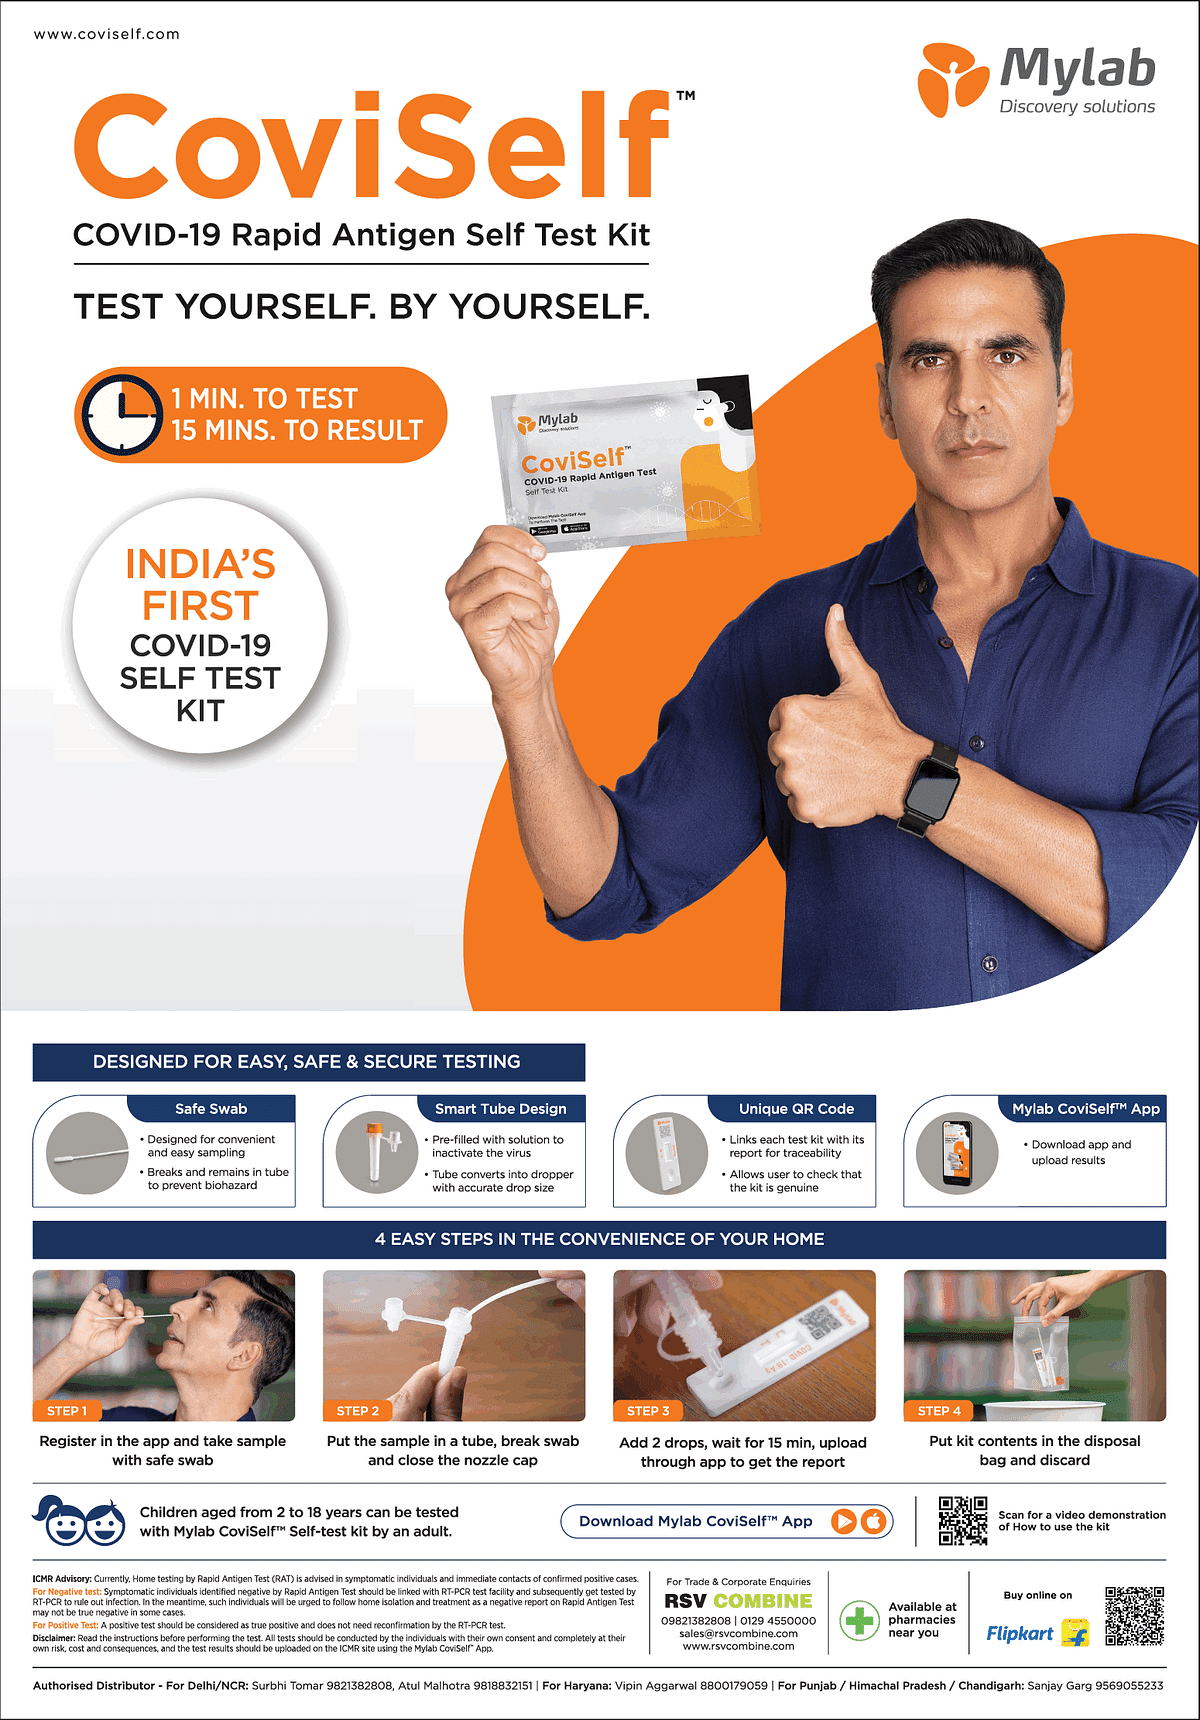 """""""We spent over five months to redesign the kit for easy home use"""":  Mylab's MD on CoviSelf antigen test kit"""